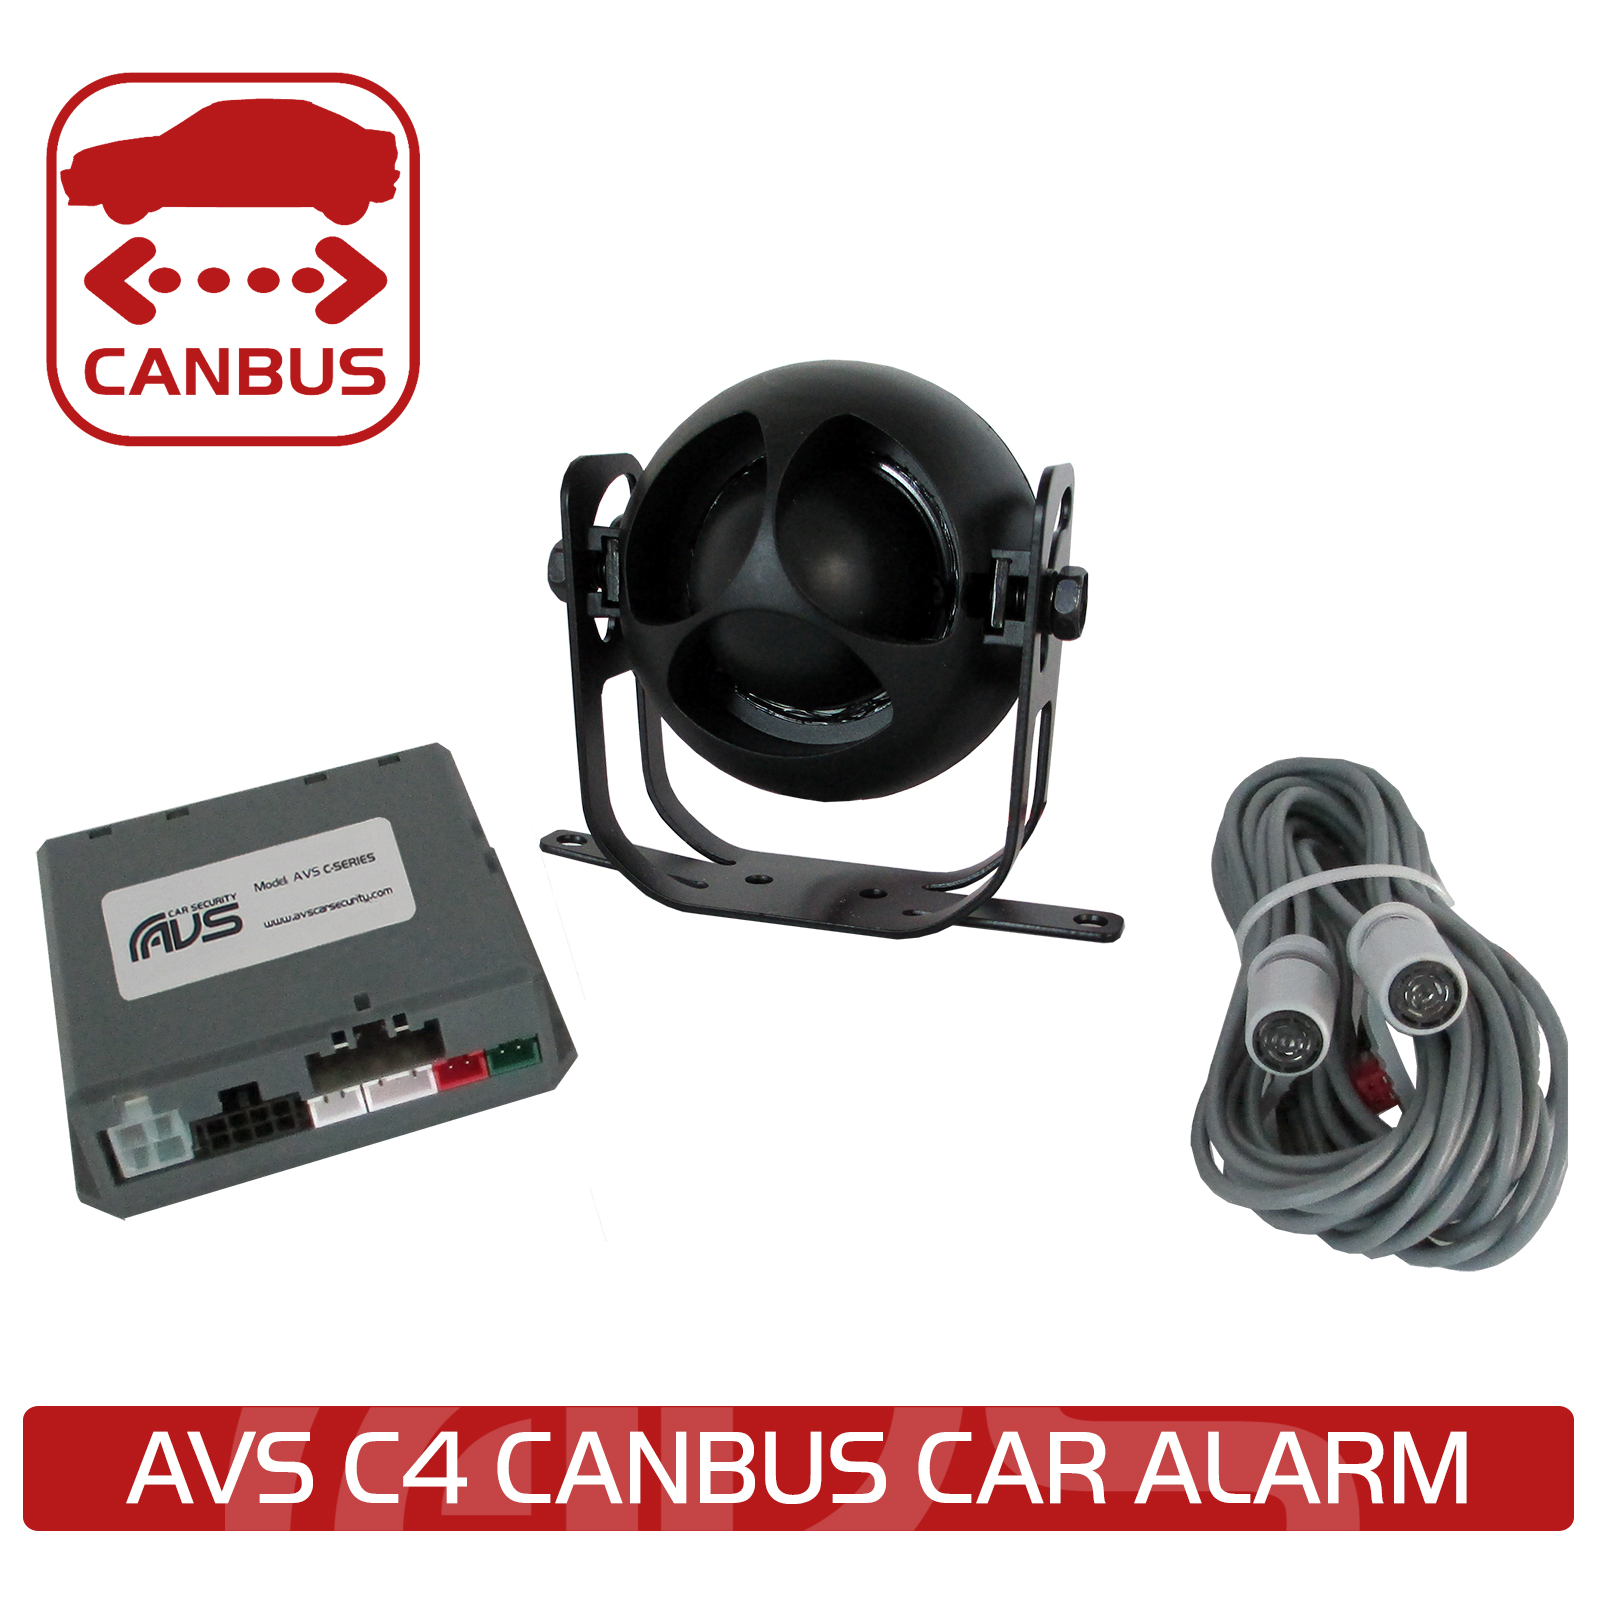 hight resolution of the avs c4 digital car alarm communicates with your vehicle s can bus platform for seamless integration into the factory system